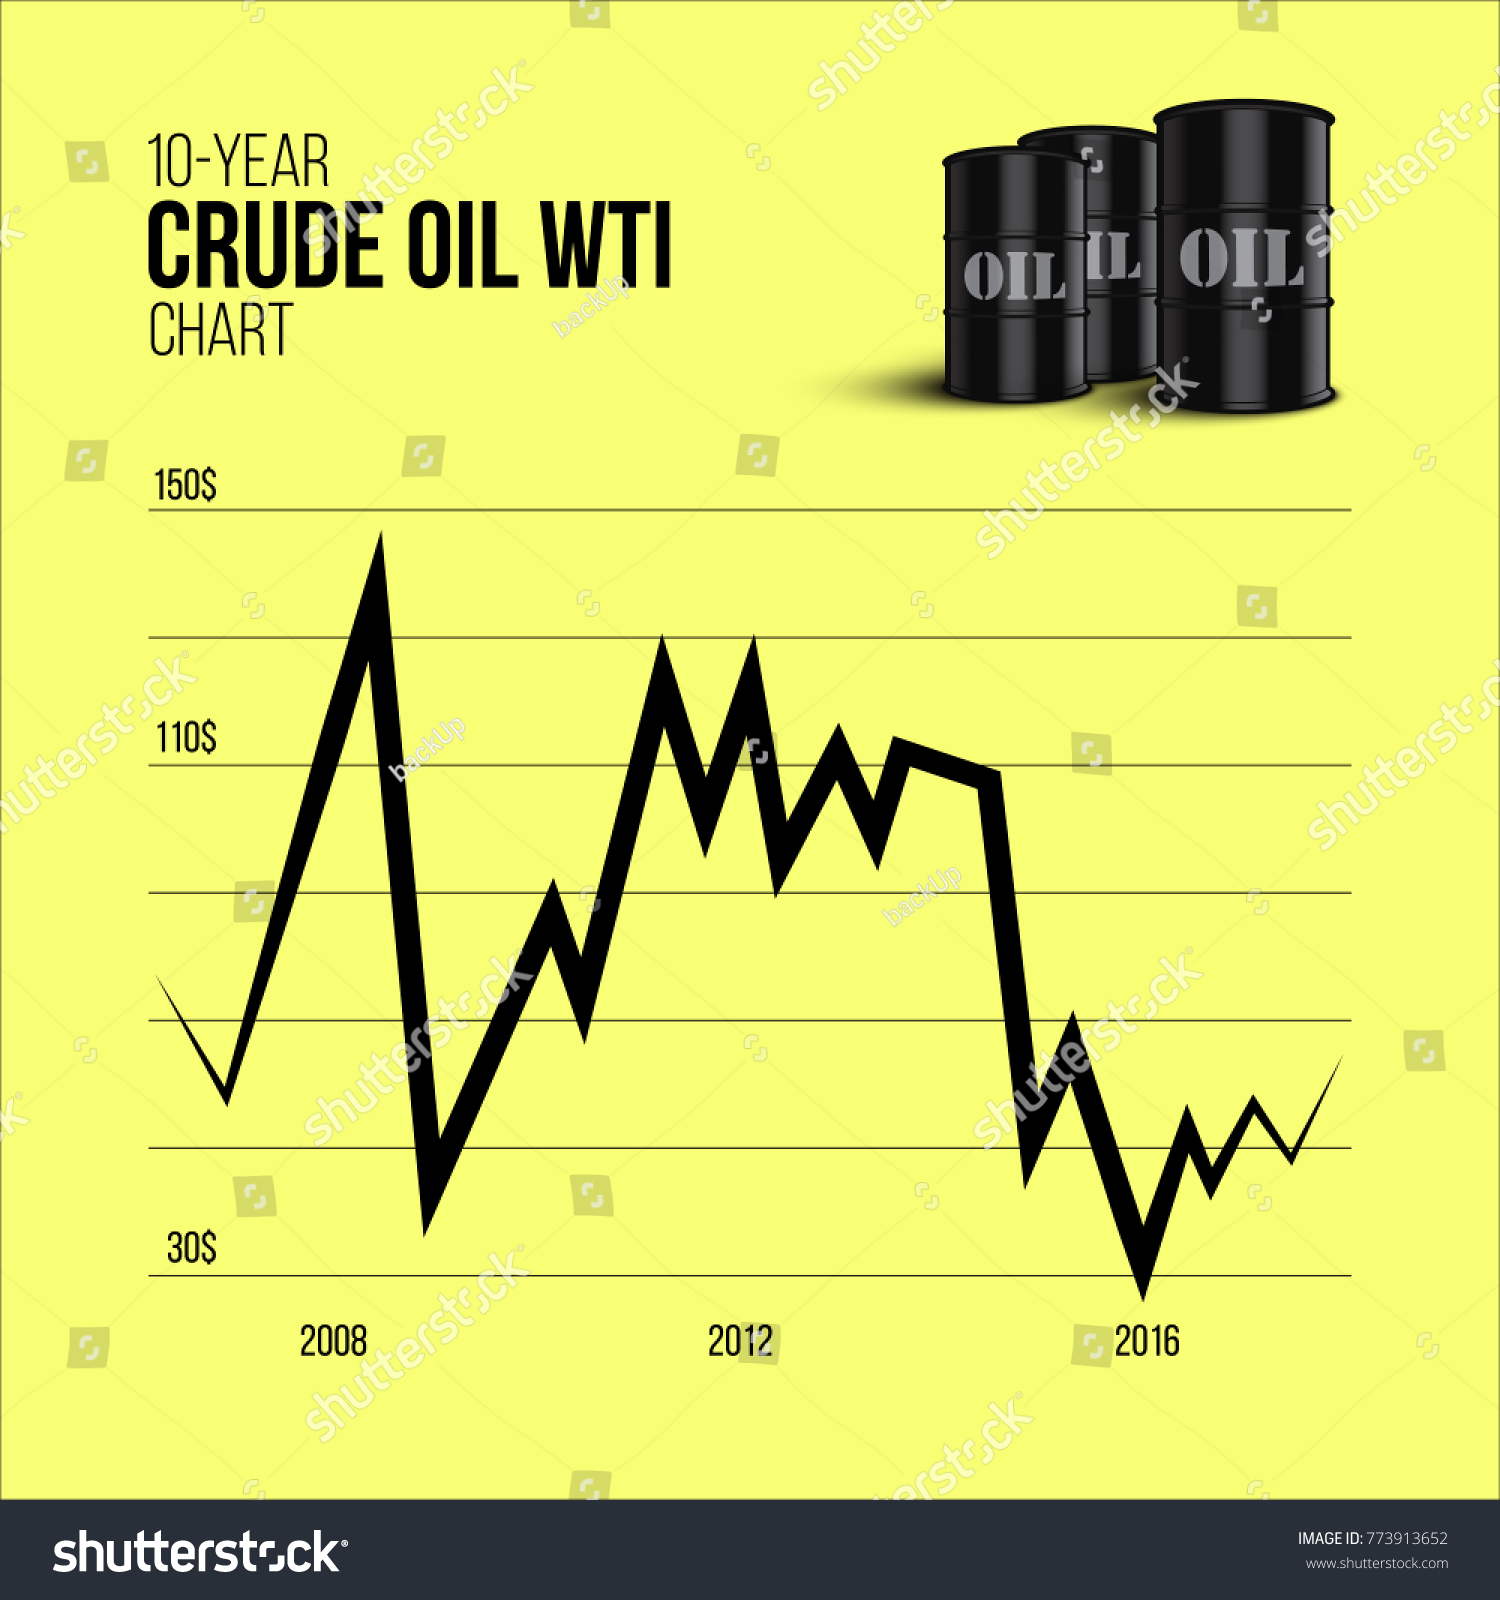 Crude oil infographics 10year crude oil stock vector 773913652 crude oil infographics 10 year crude oil wti chart with oil barrels on yellow biocorpaavc Image collections